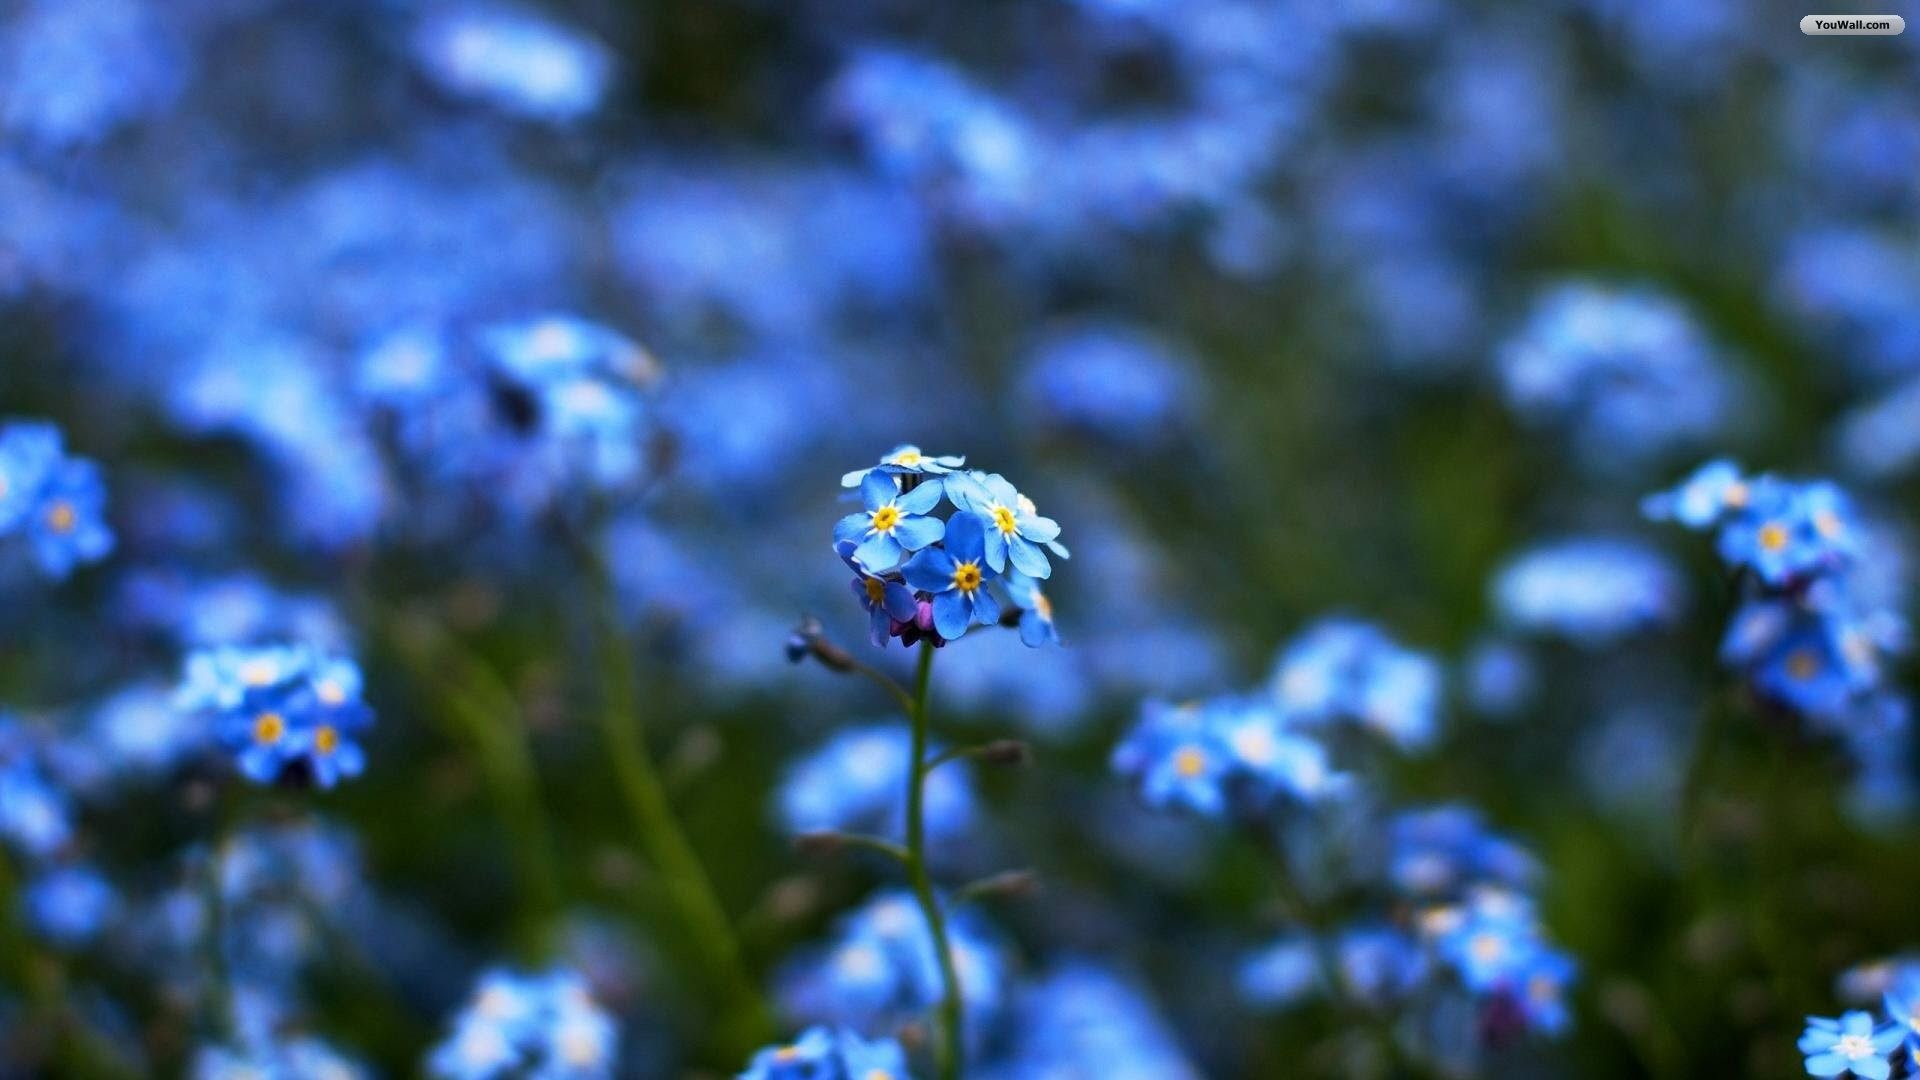 Blue Flower Wallpaper For Android …